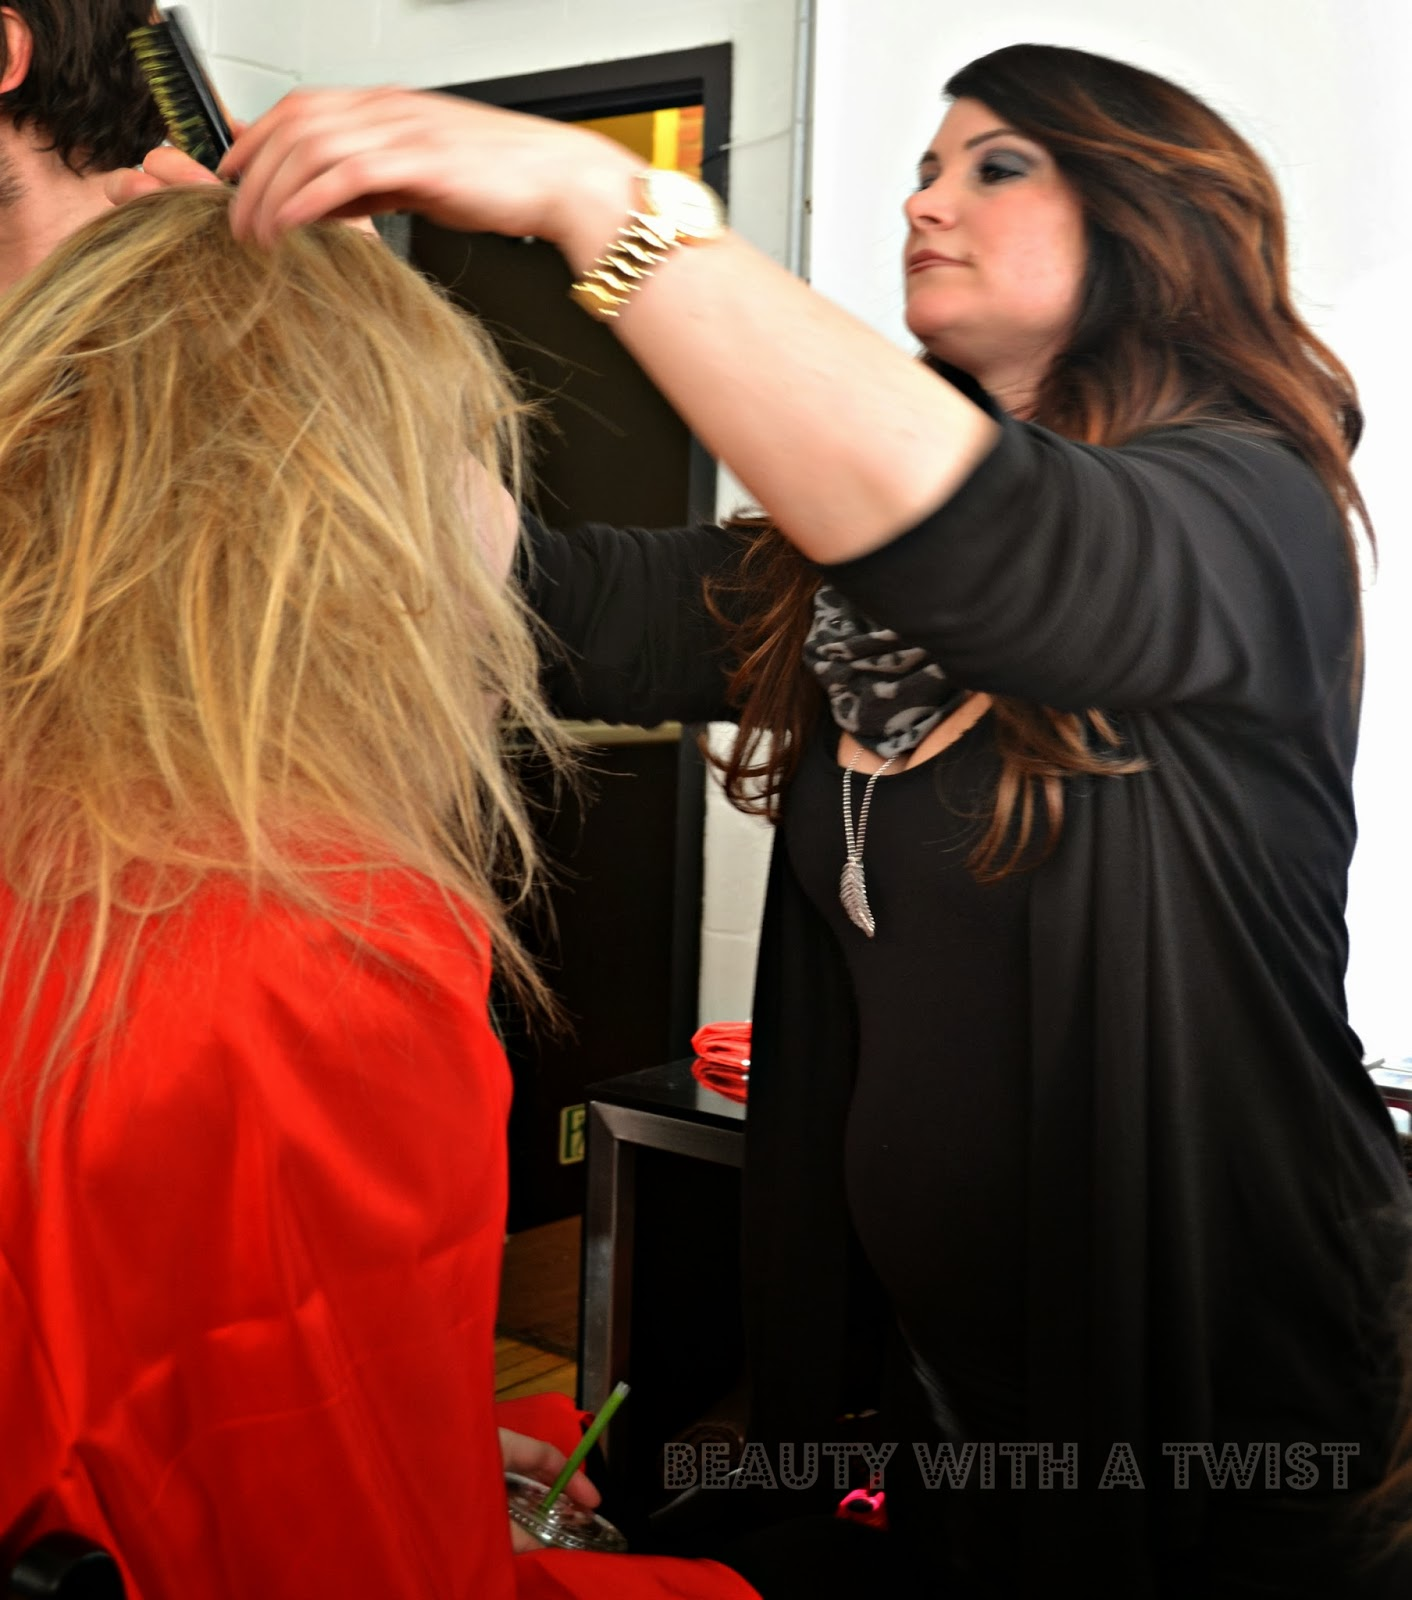 backstage, 5:31 Jérôme, NYFW, Beauty with a Twist, CHI Haircare, beauty,